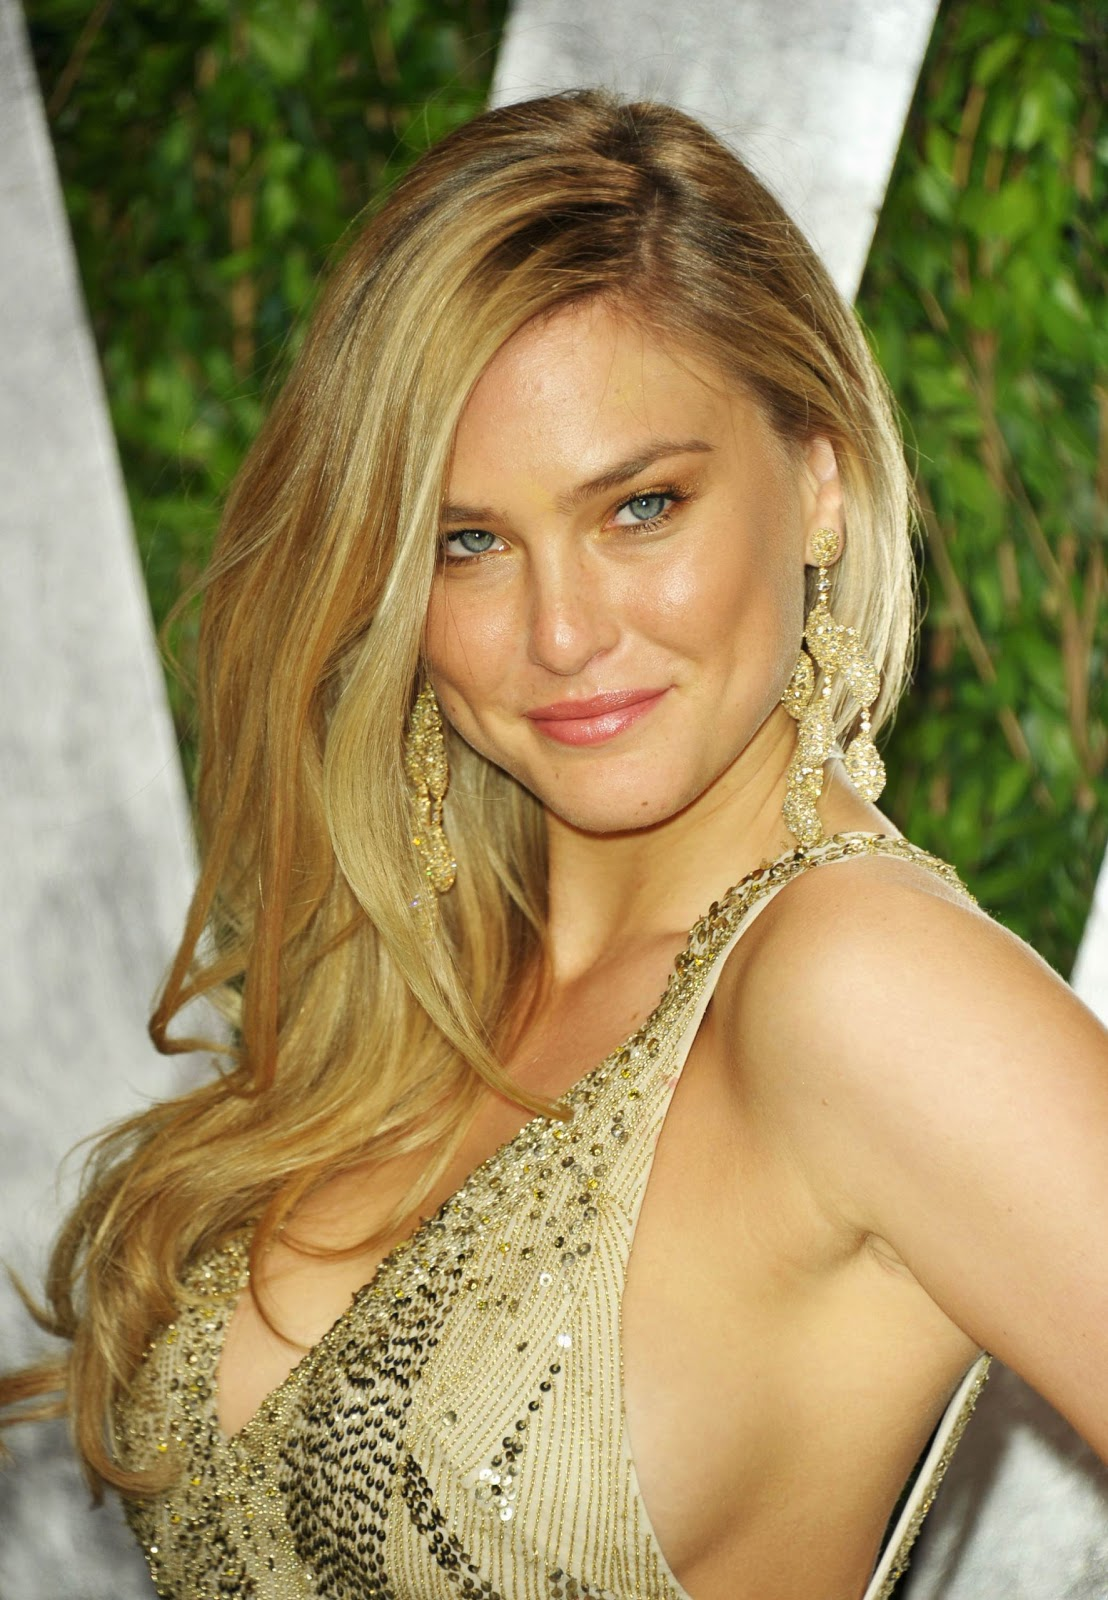 http://1.bp.blogspot.com/-RmbBRWTMtG4/T5FTJ-EG3FI/AAAAAAAAB_A/GyVy4G9jBPQ/s1600/Bar+Refaeli+Disappointed+Over+TSA+Screening.jpg